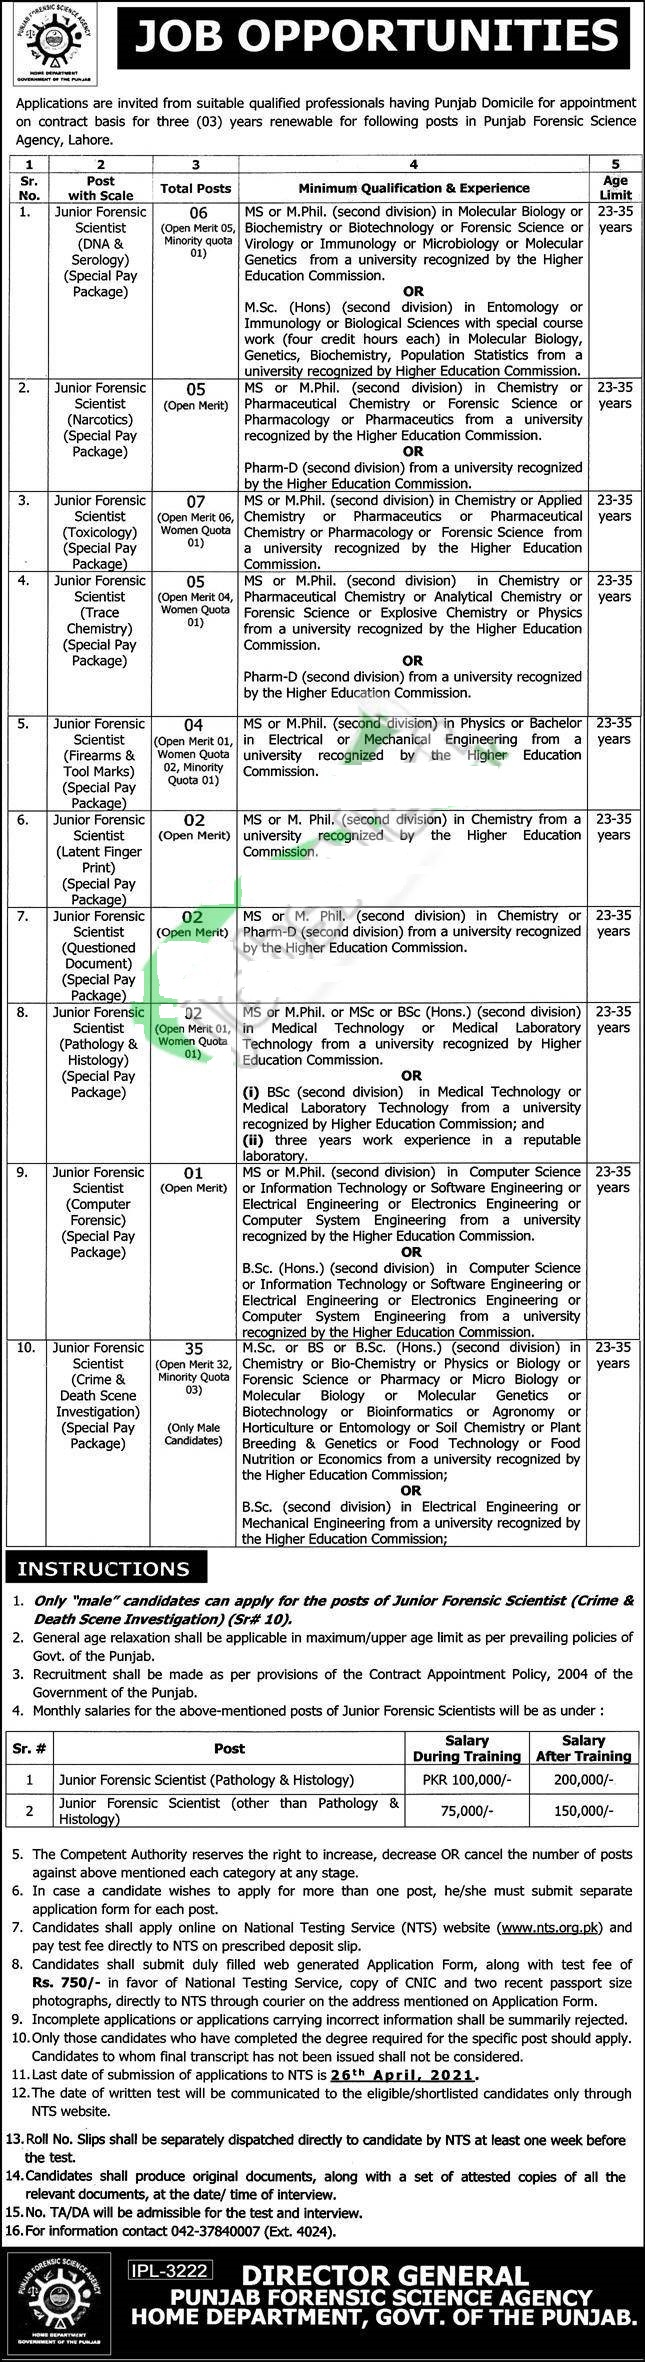 PFSA Application Form 2021 Jobs in Punjab Forensic Science Agency